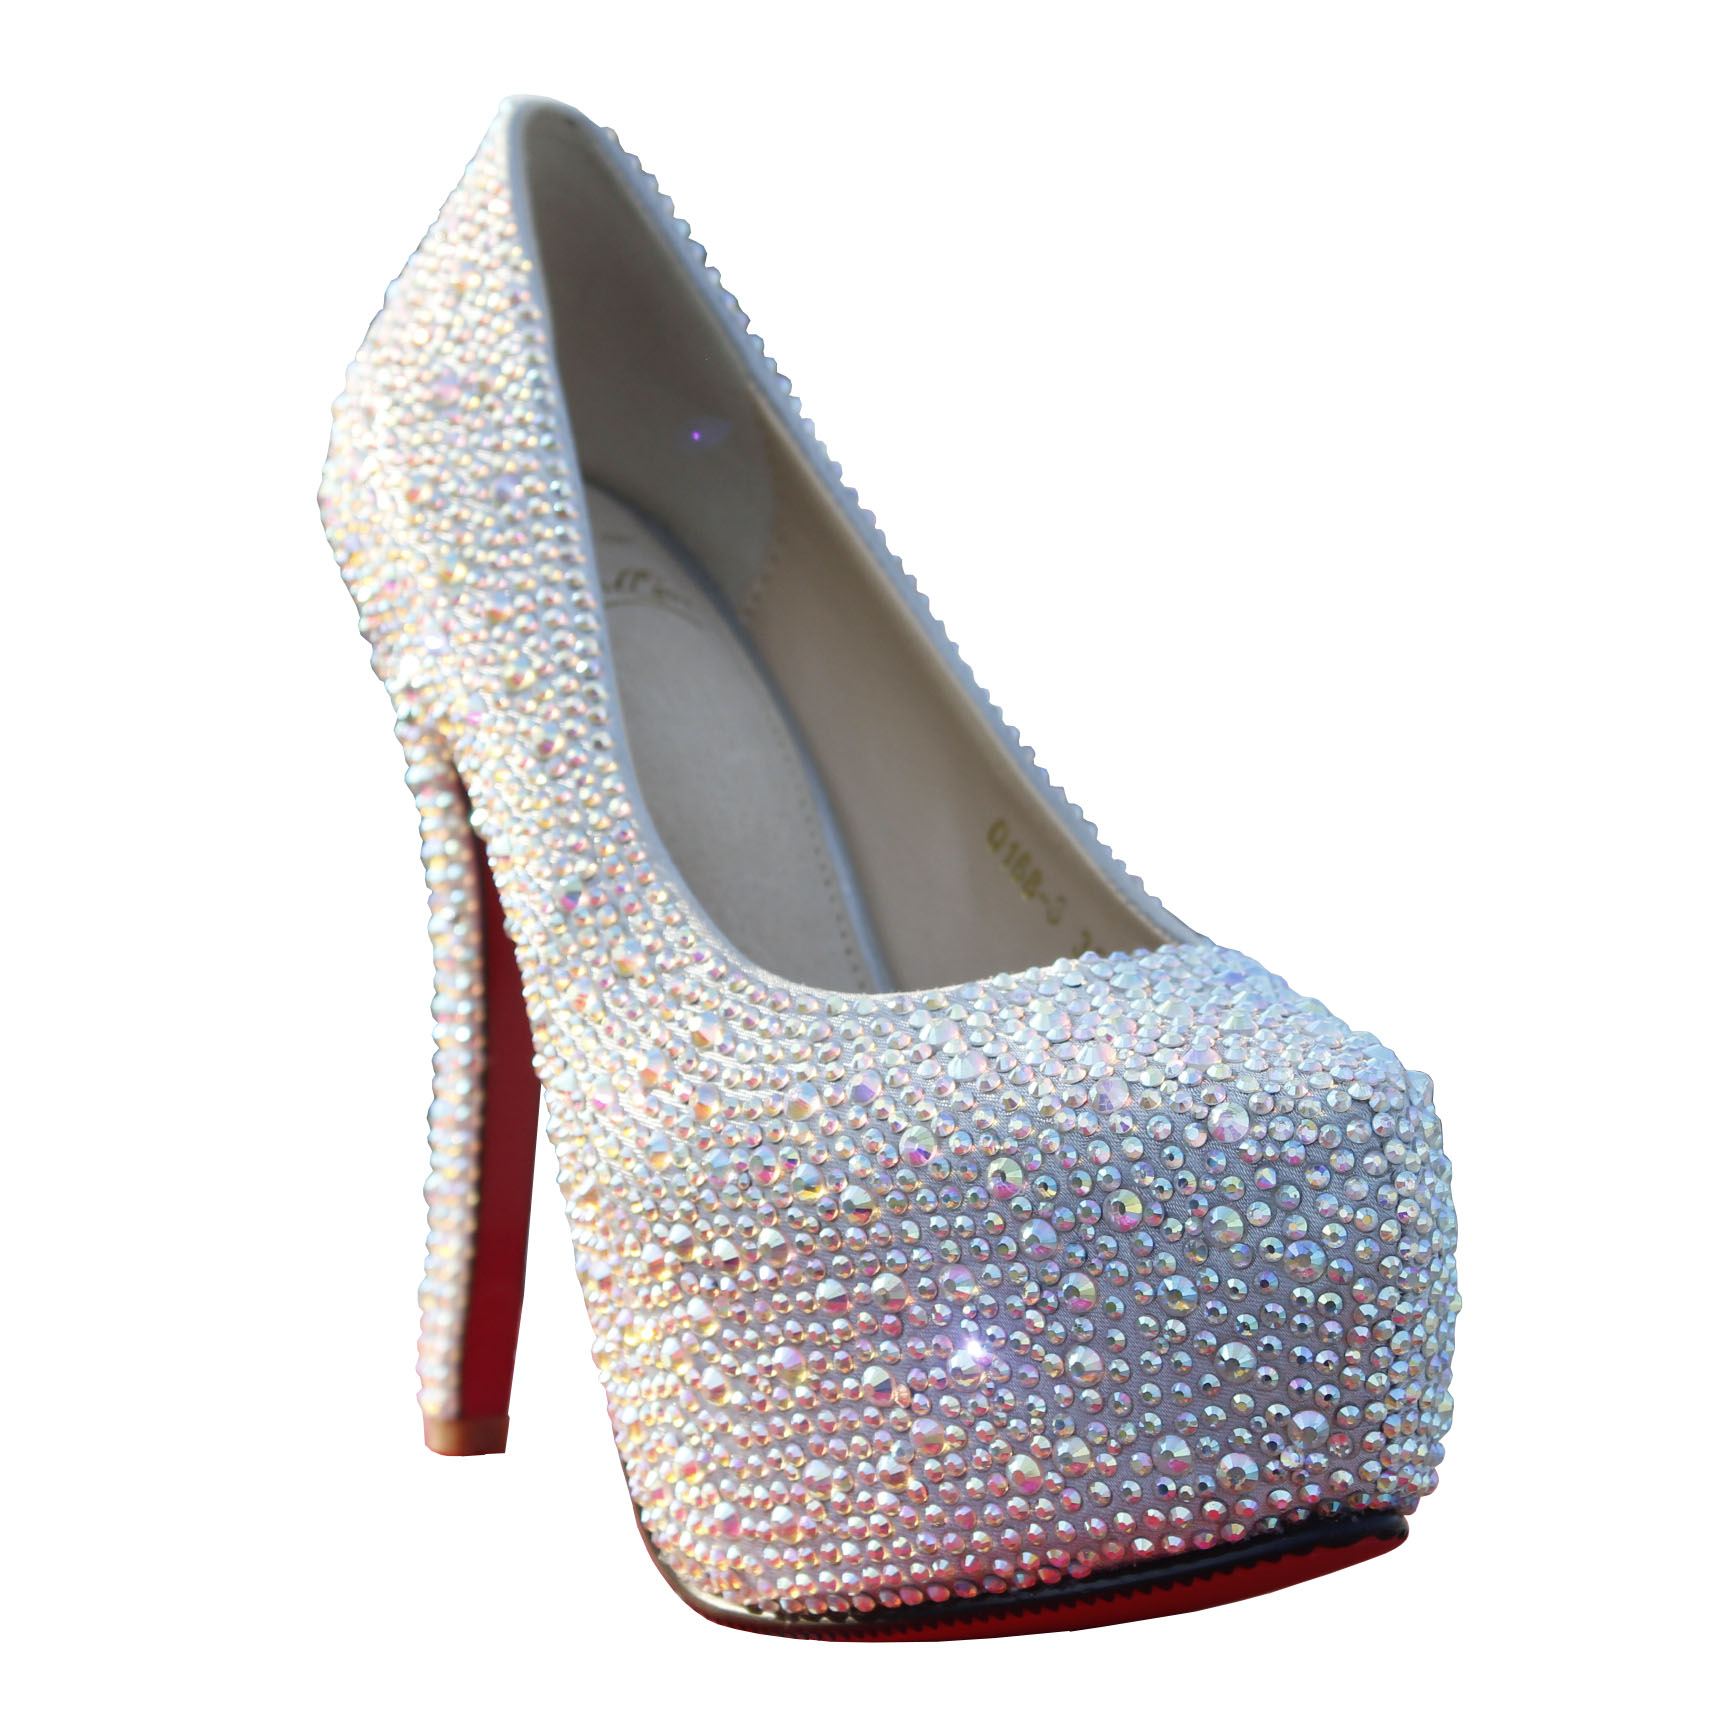 Free Shipping 11/14cm Fashion Lady Sparkly Upper Stiletto Heels Rhinestone  Shoes Crystal Shoes Wedding Shoes Platform ...